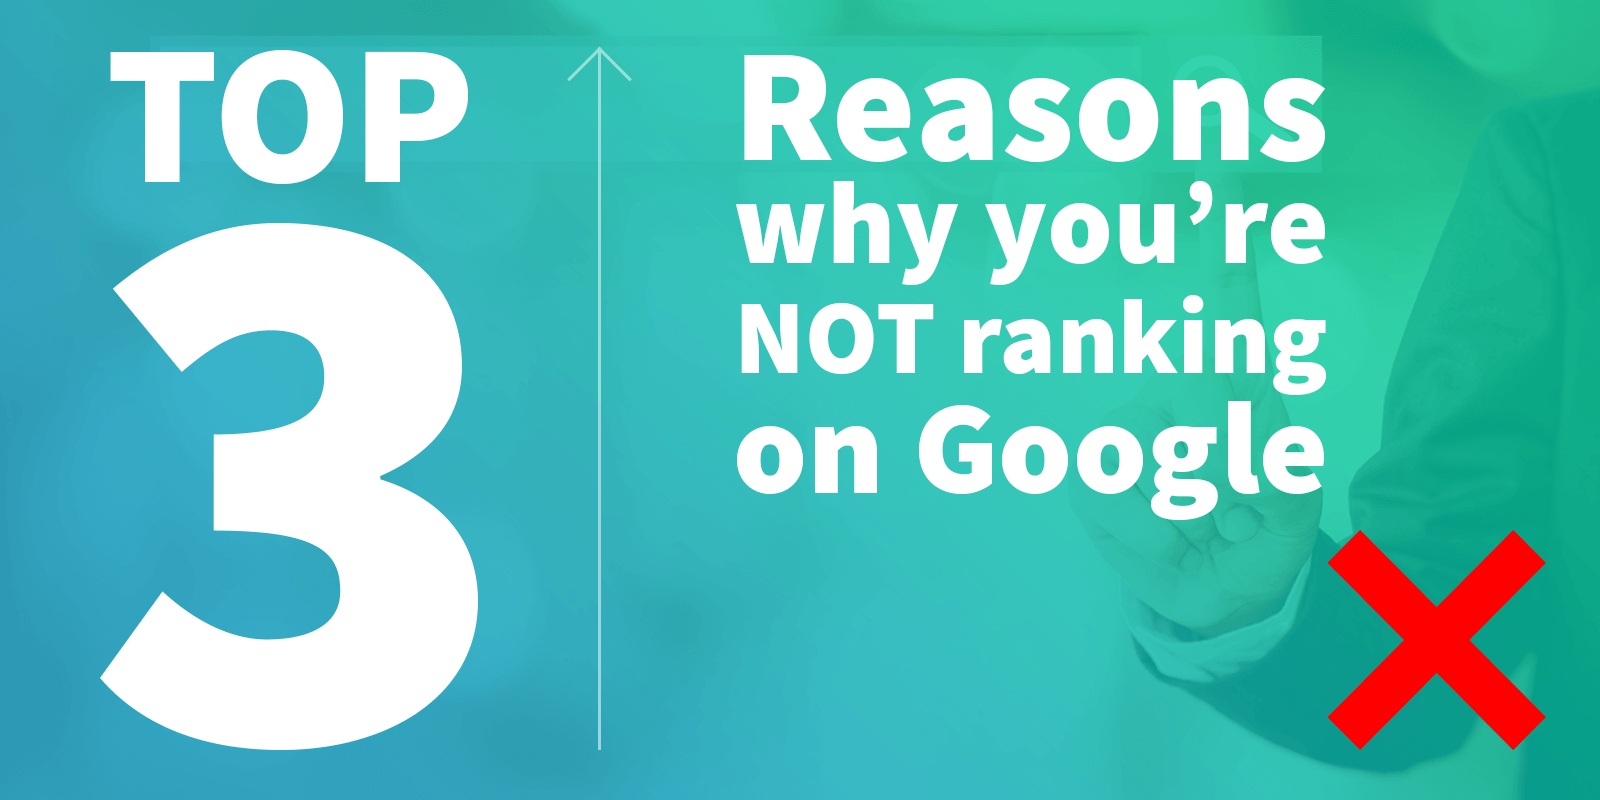 Top 3 reasons why your website is not ranking on Google